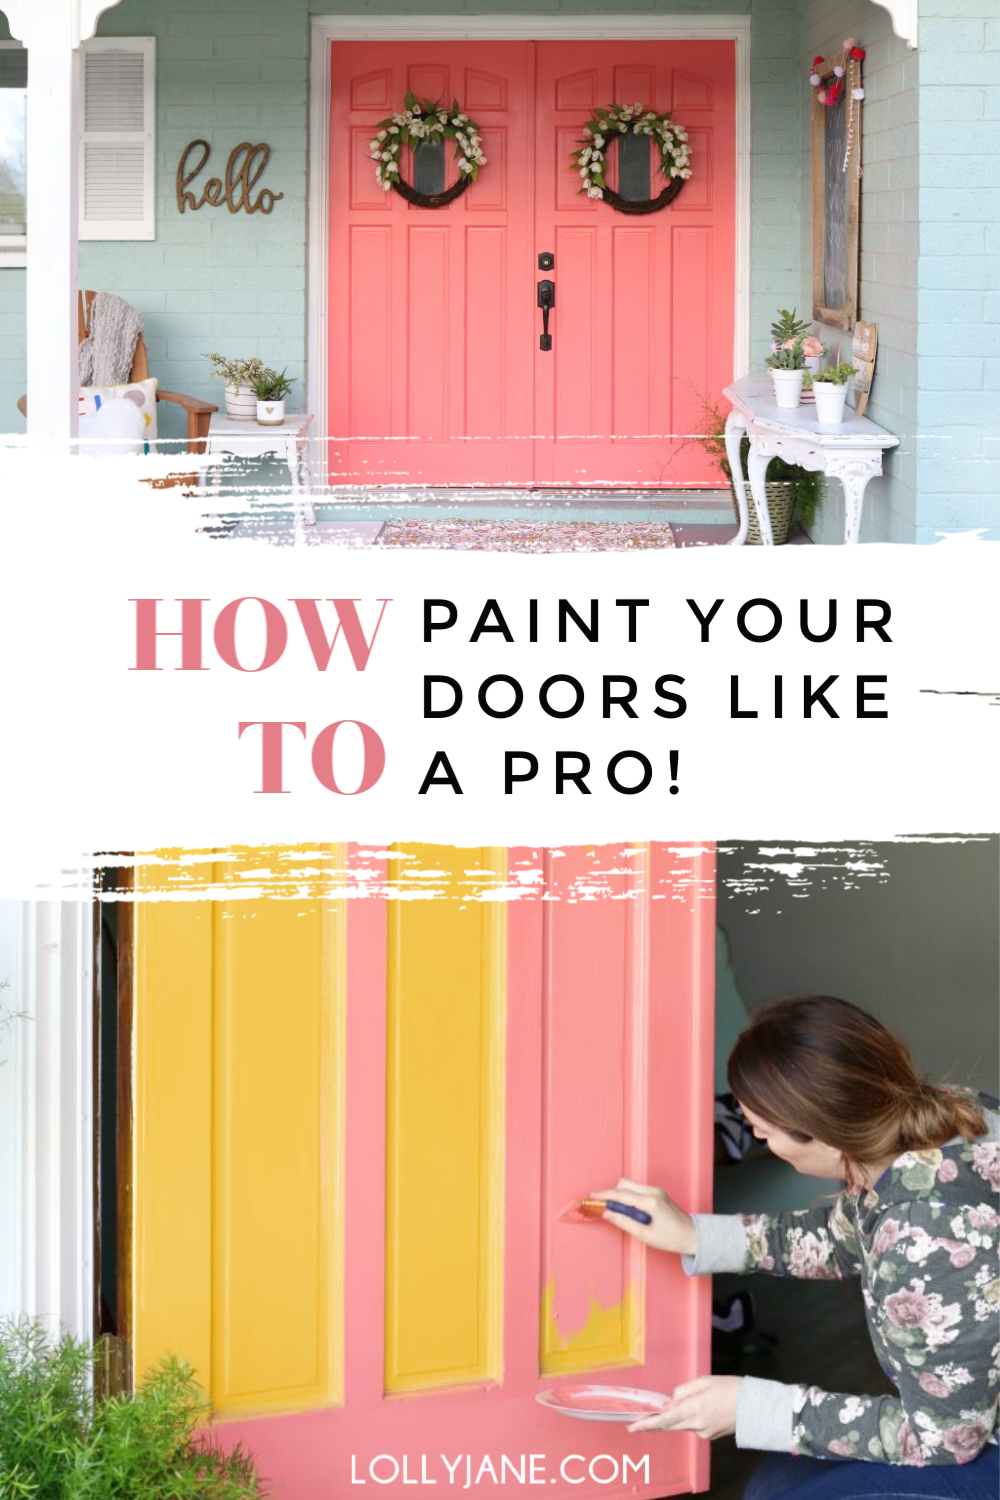 How to Paint DOORS like a PRO... in just a few steps! #diy #painteddoors #painttutorial #paintingtips